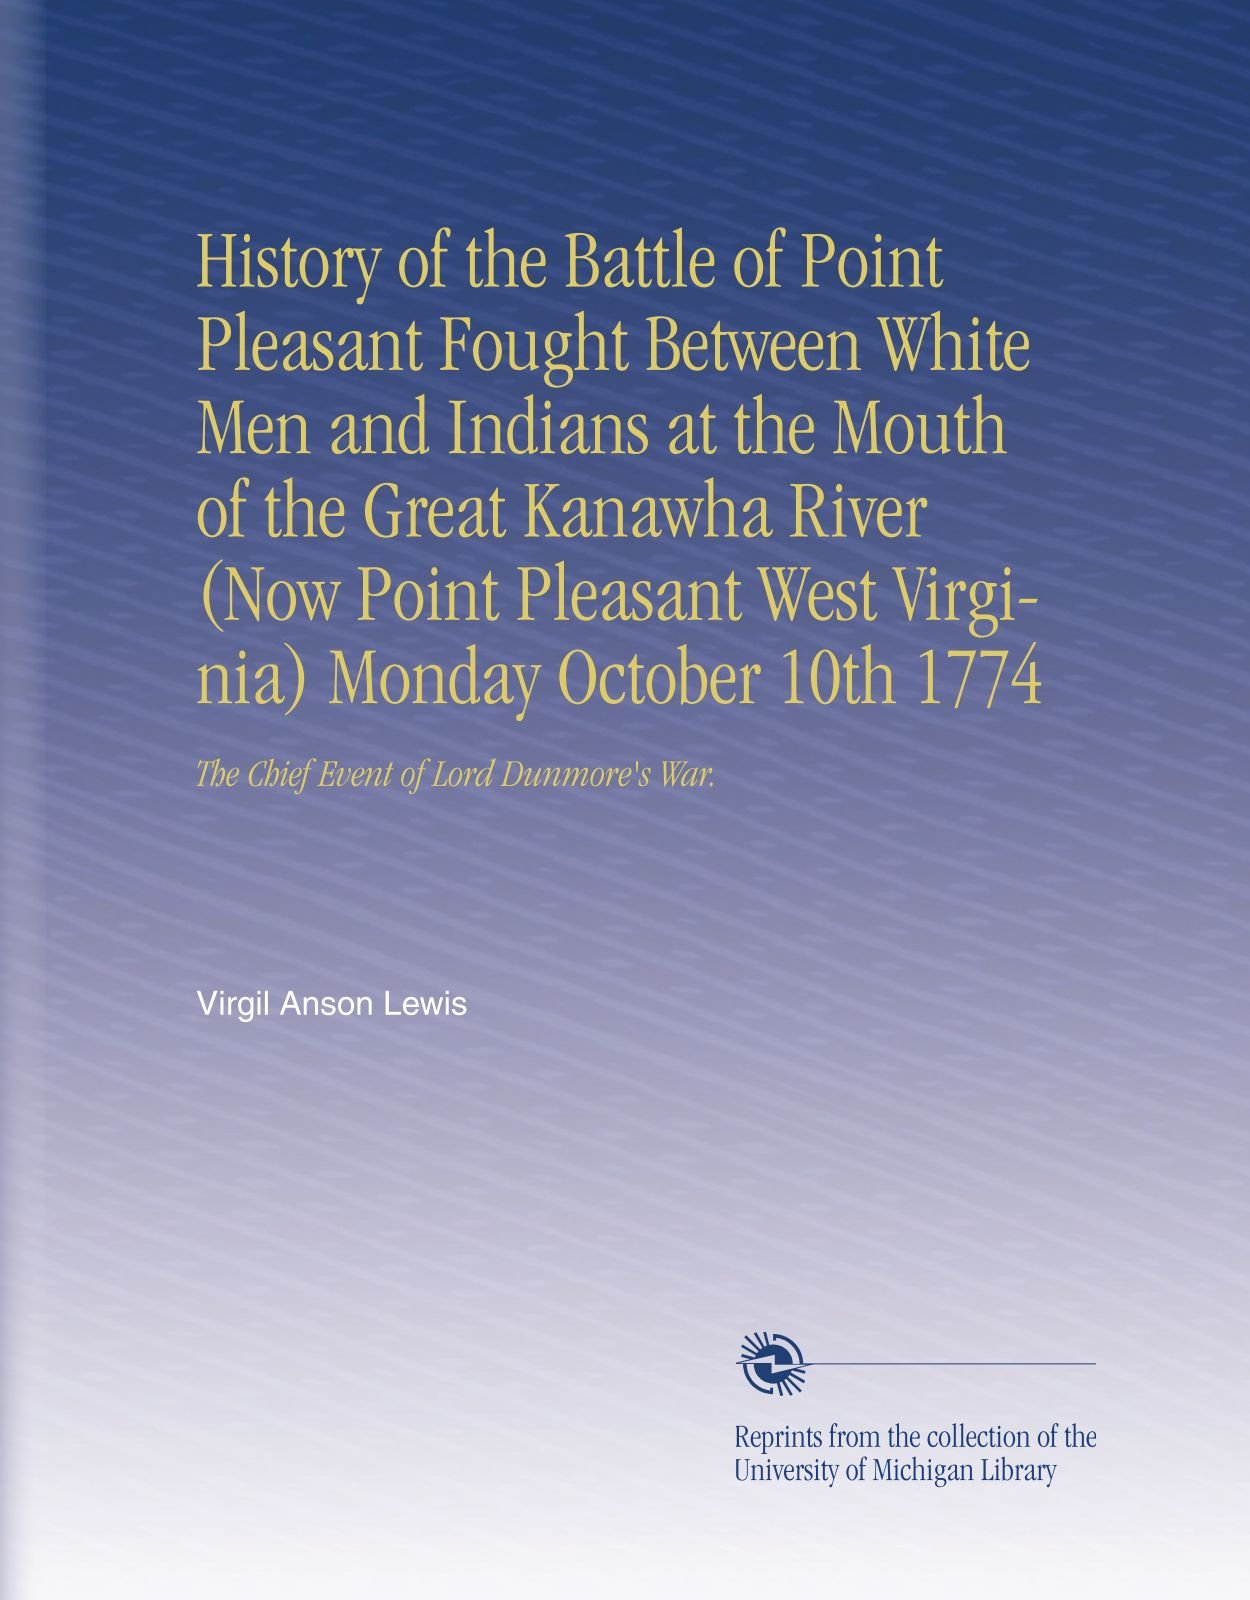 History of the Battle of Point Pleasant Fought Between White Men and Indians at the Mouth of the Great Kanawha River (Now Point Pleasant West ... 1774: The Chief Event of Lord Dunmore's War. ebook